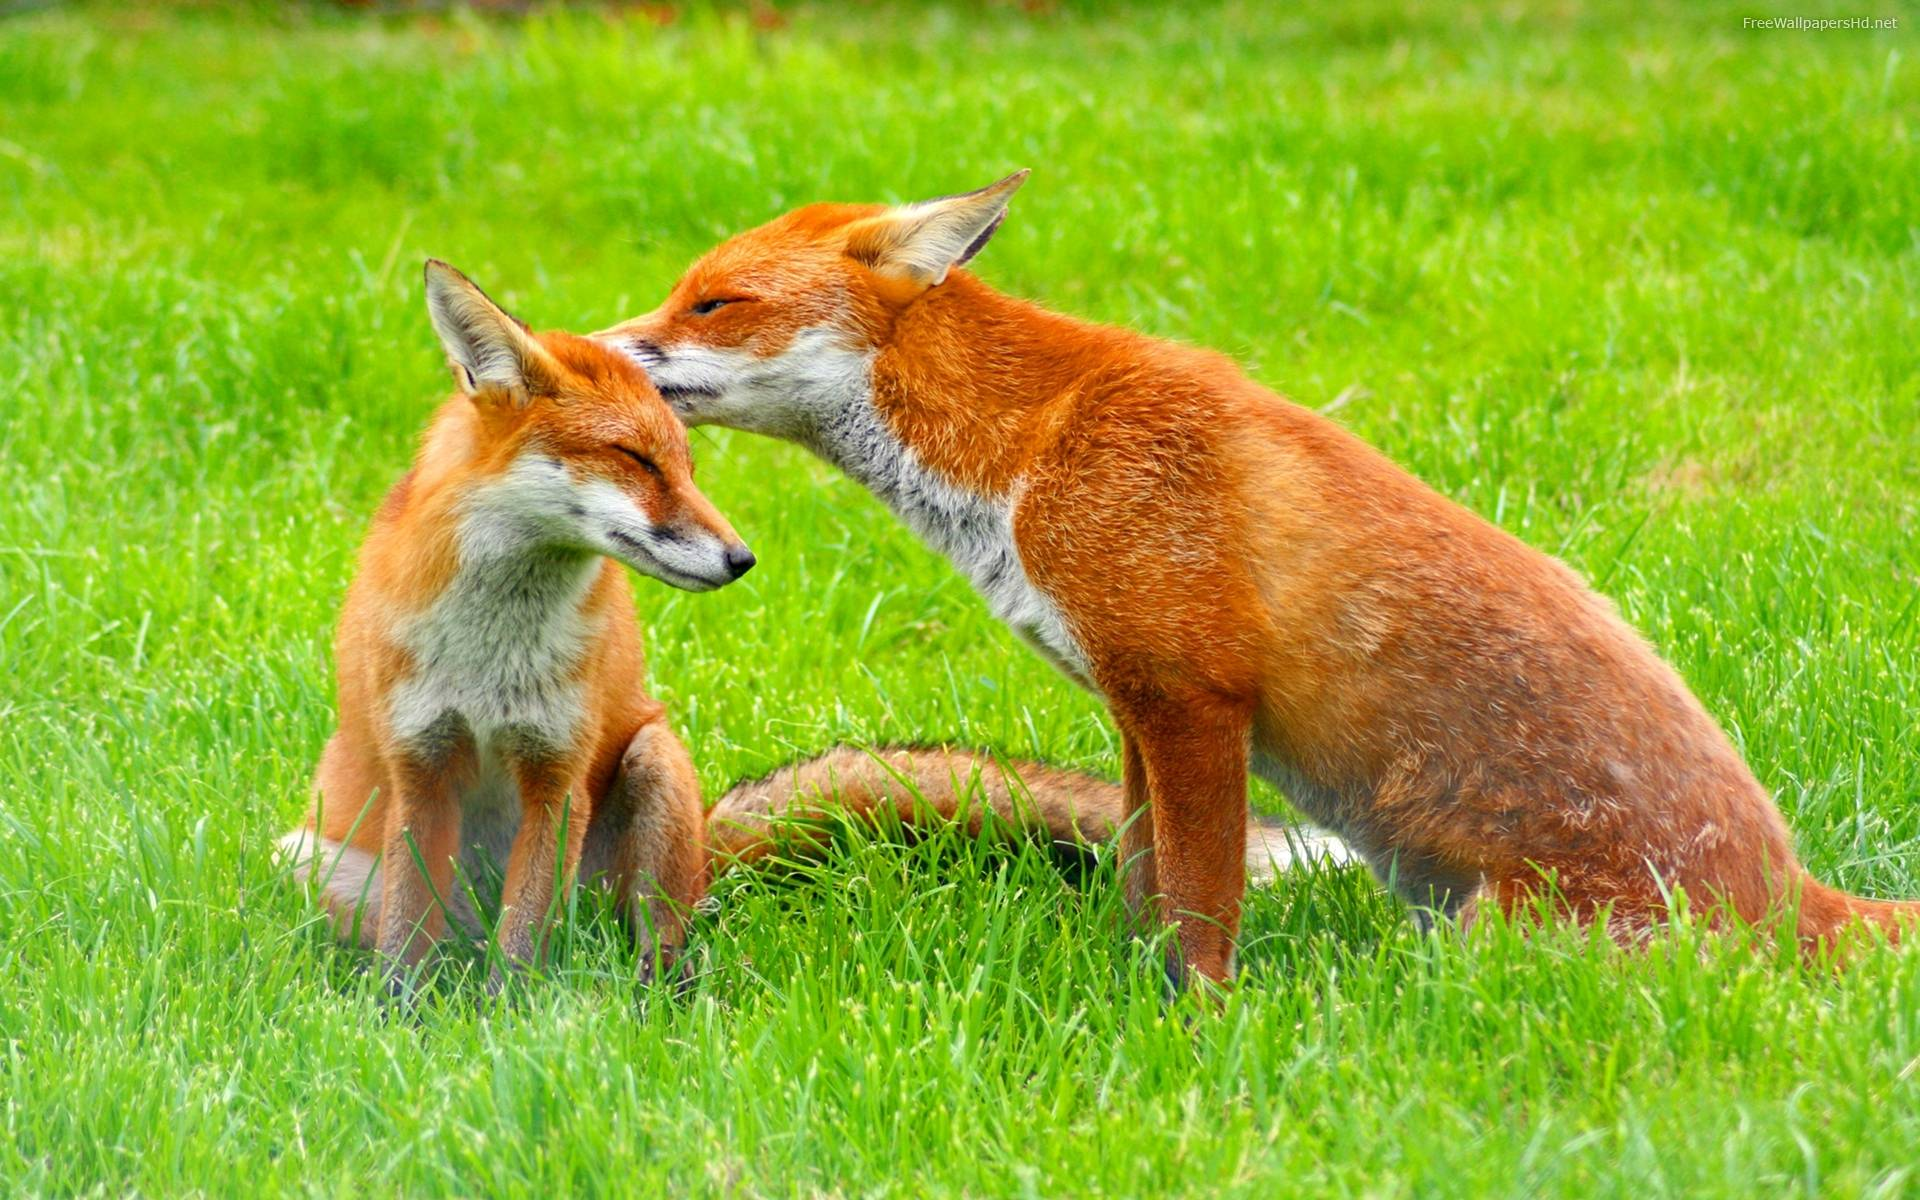 red-fox-wallpapers-free-picture free picture